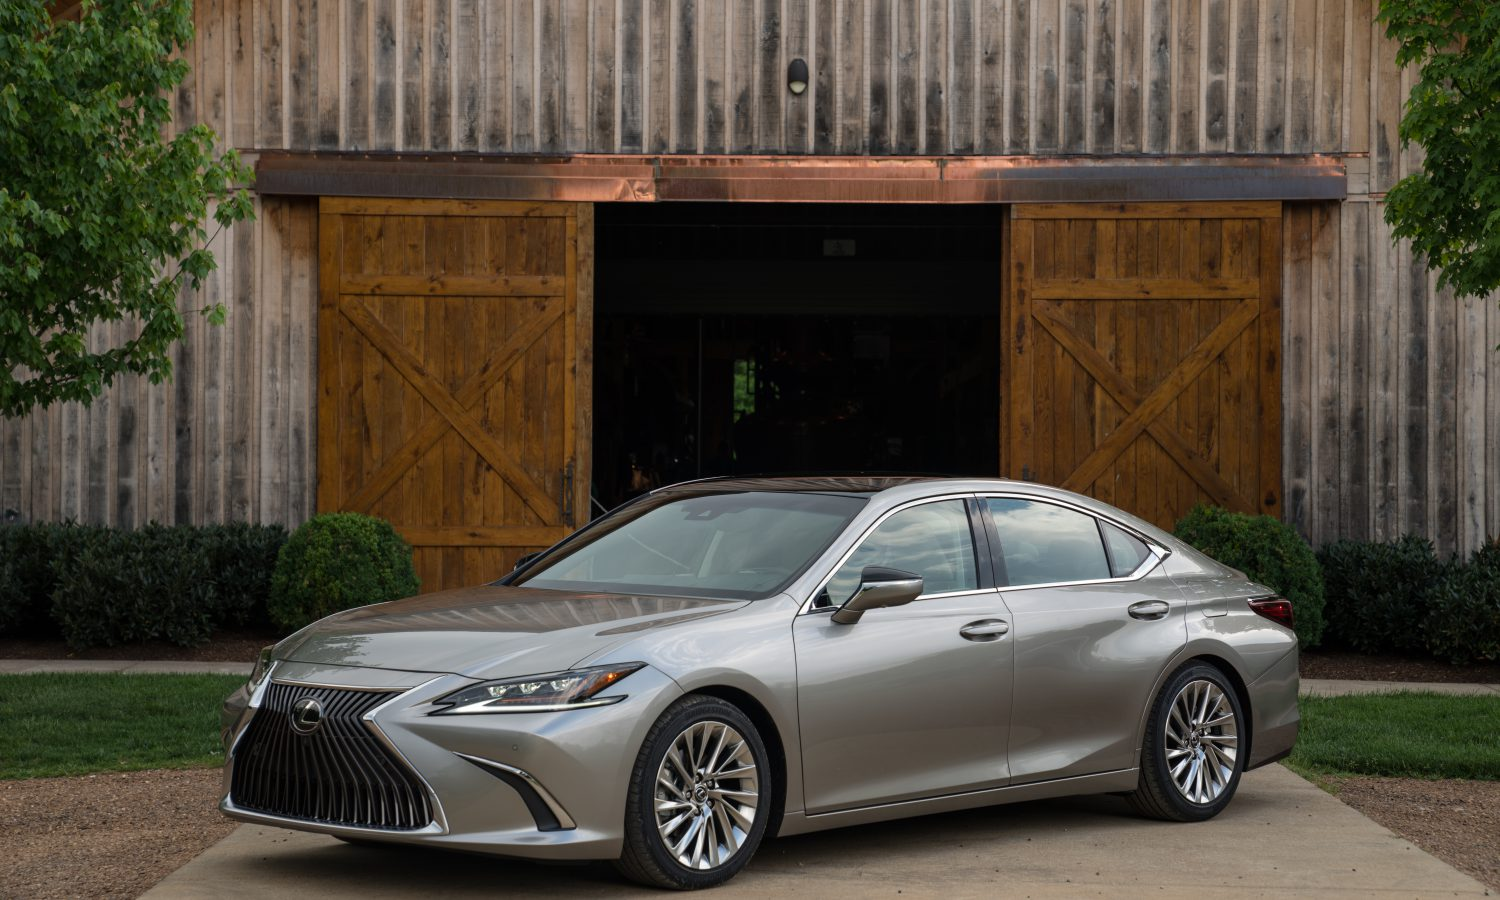 A New Level of Performance and Sophistication – The Next Generation Lexus ES